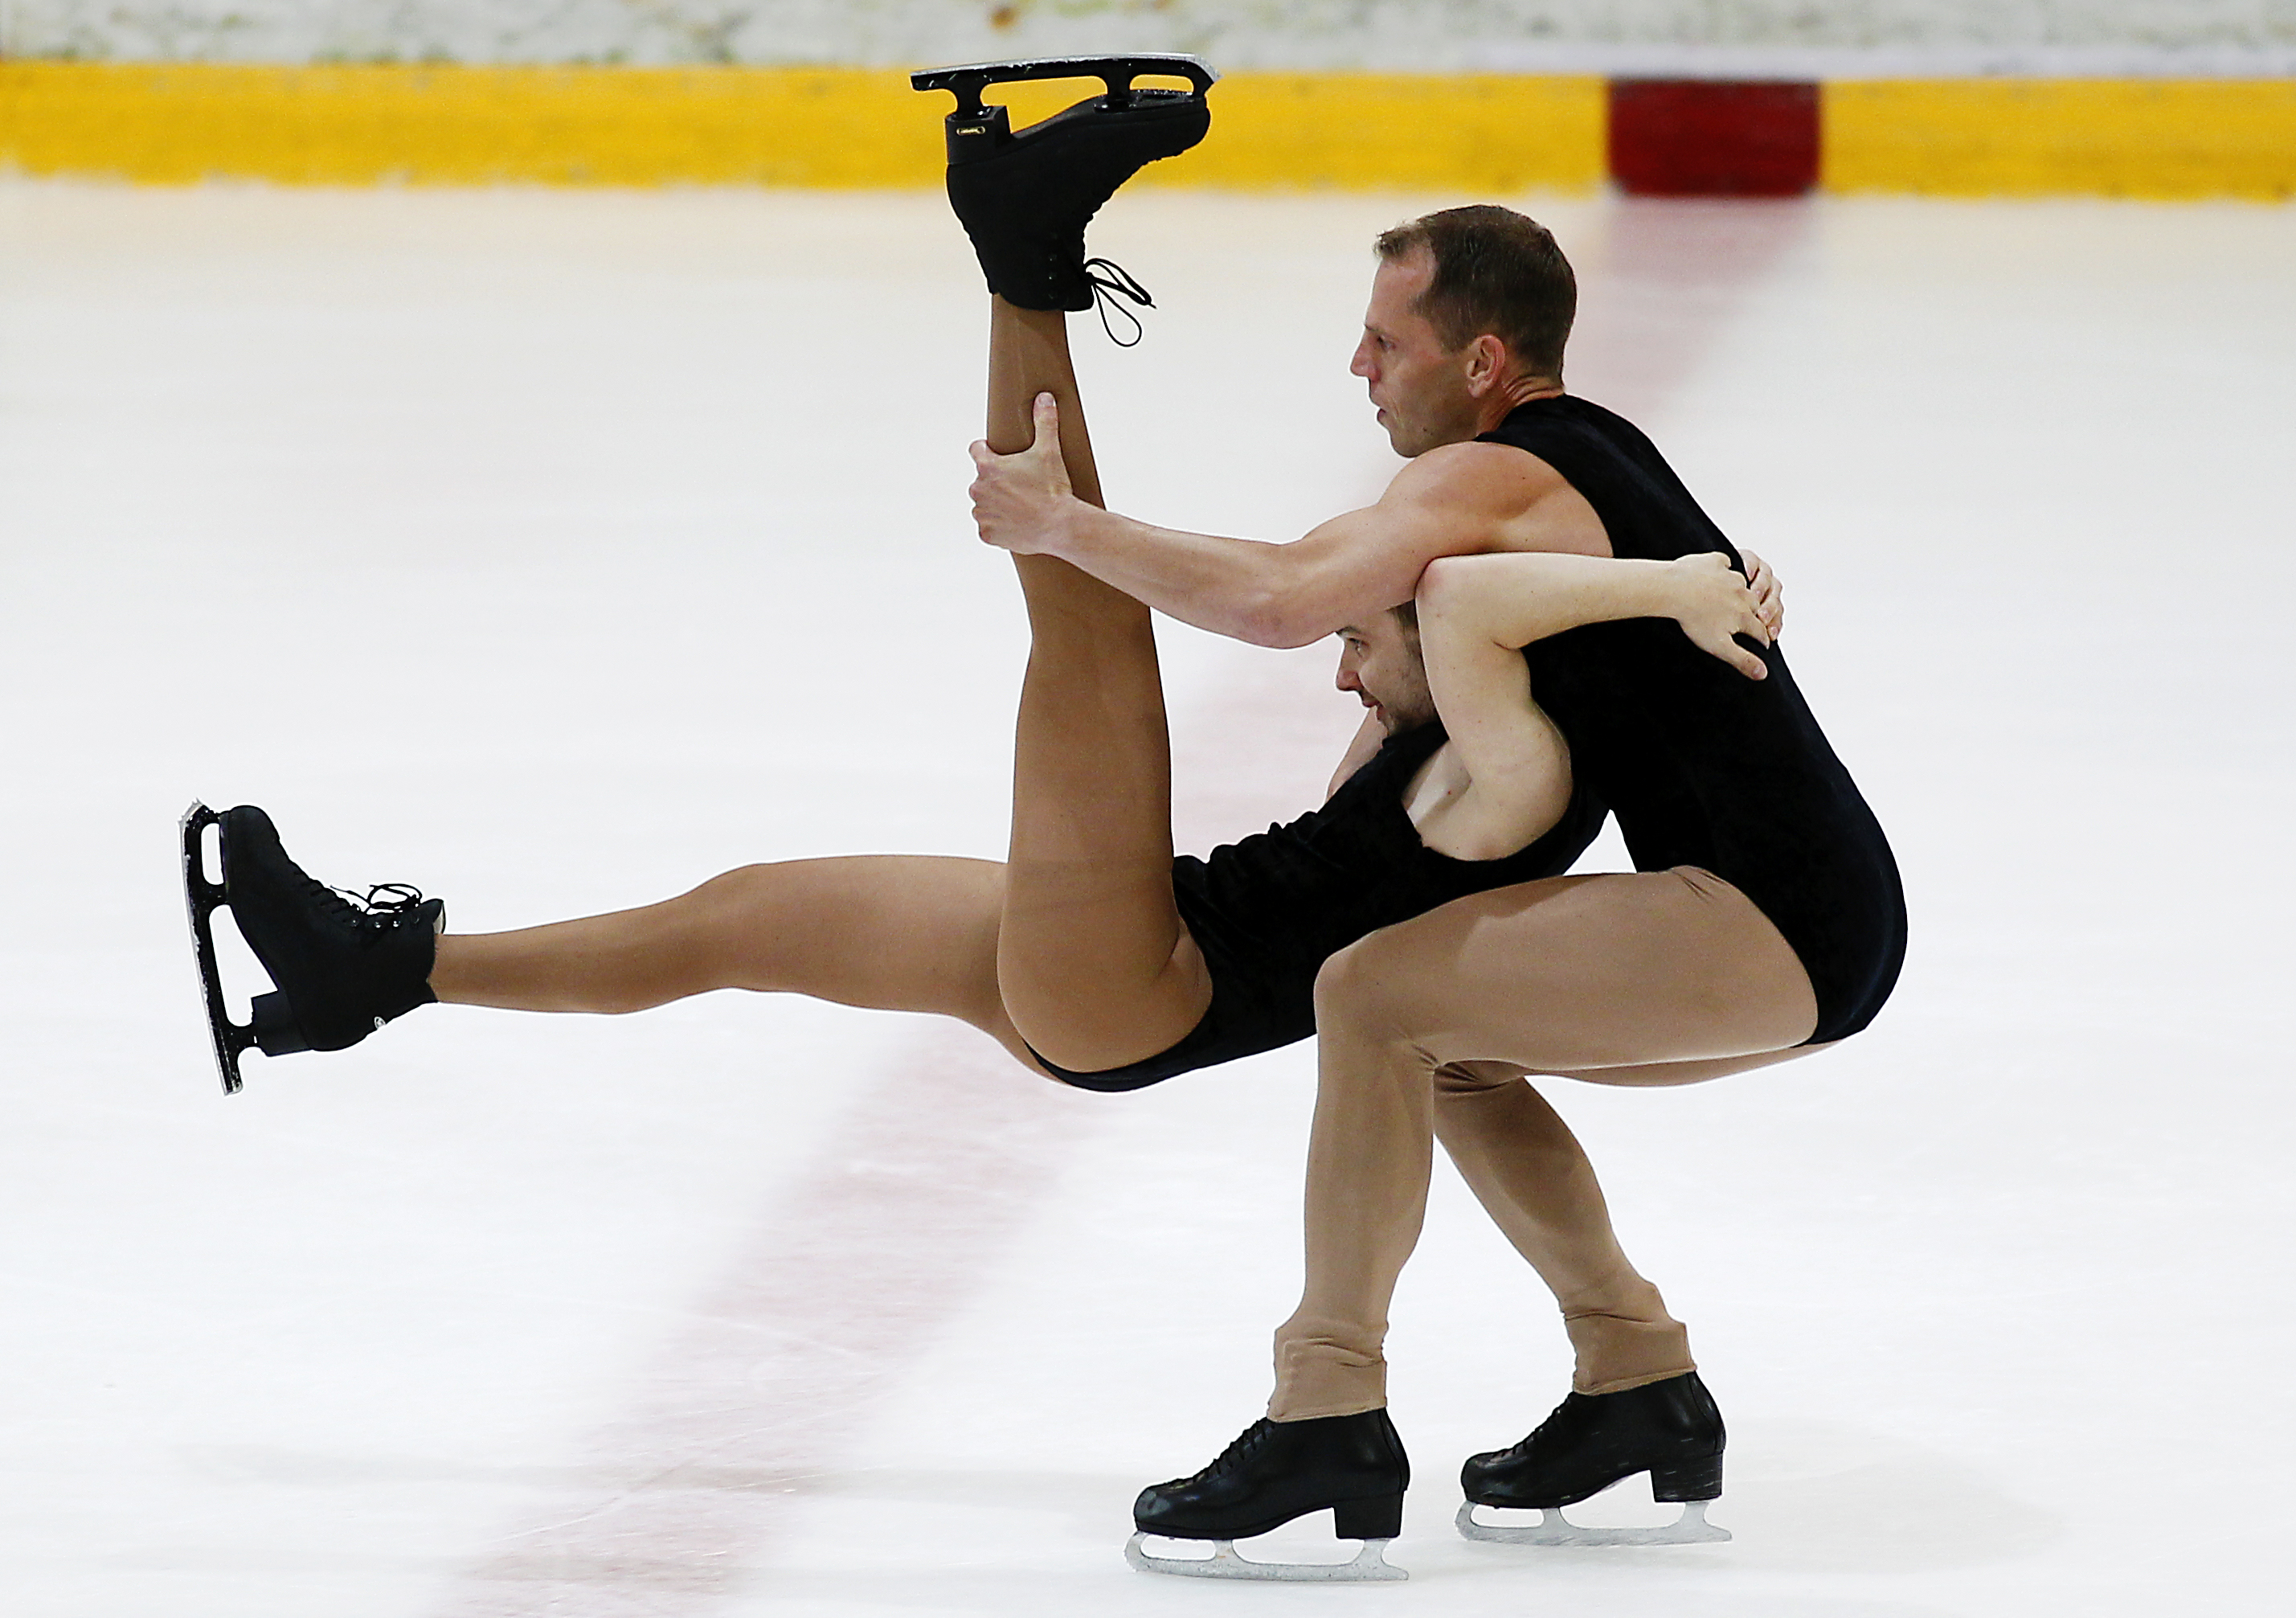 Fassbender of Germany and Zamponi of France compete in the figure skating event during the Gay Games VIII in Cologne